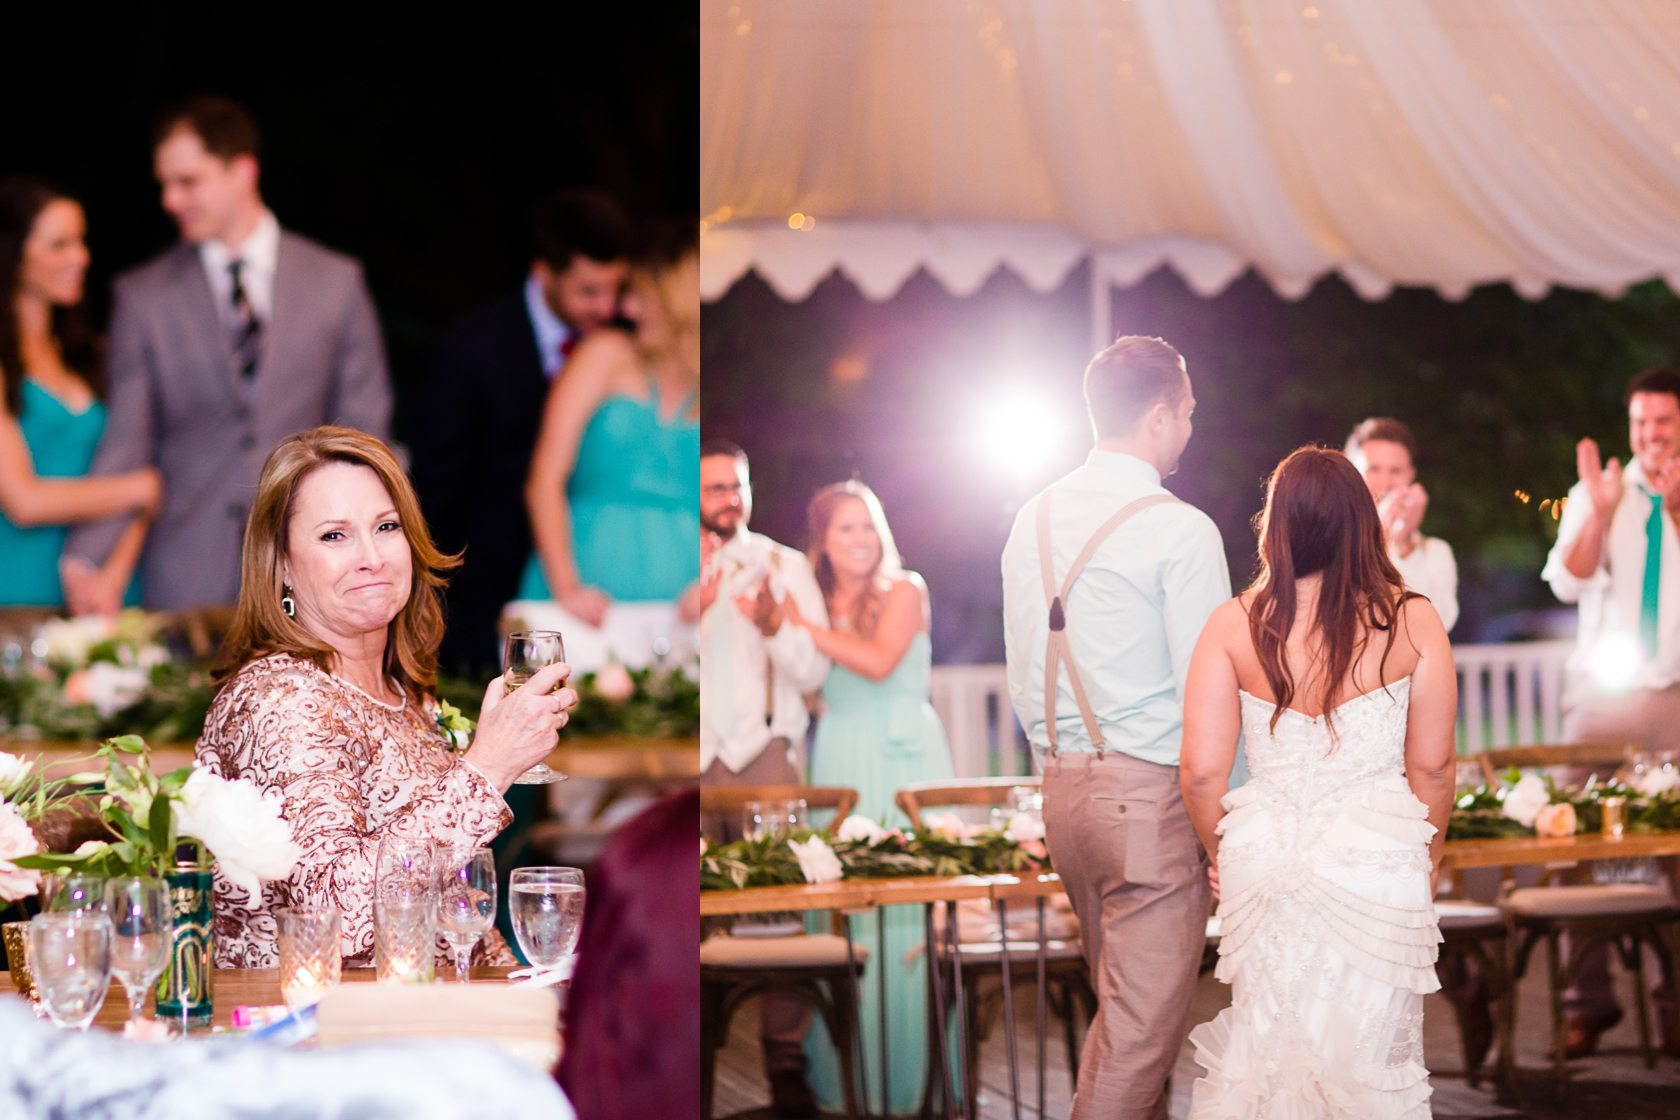 The_Printed_Palette_Wedding_at_Calamigos_Ranch_115.jpg